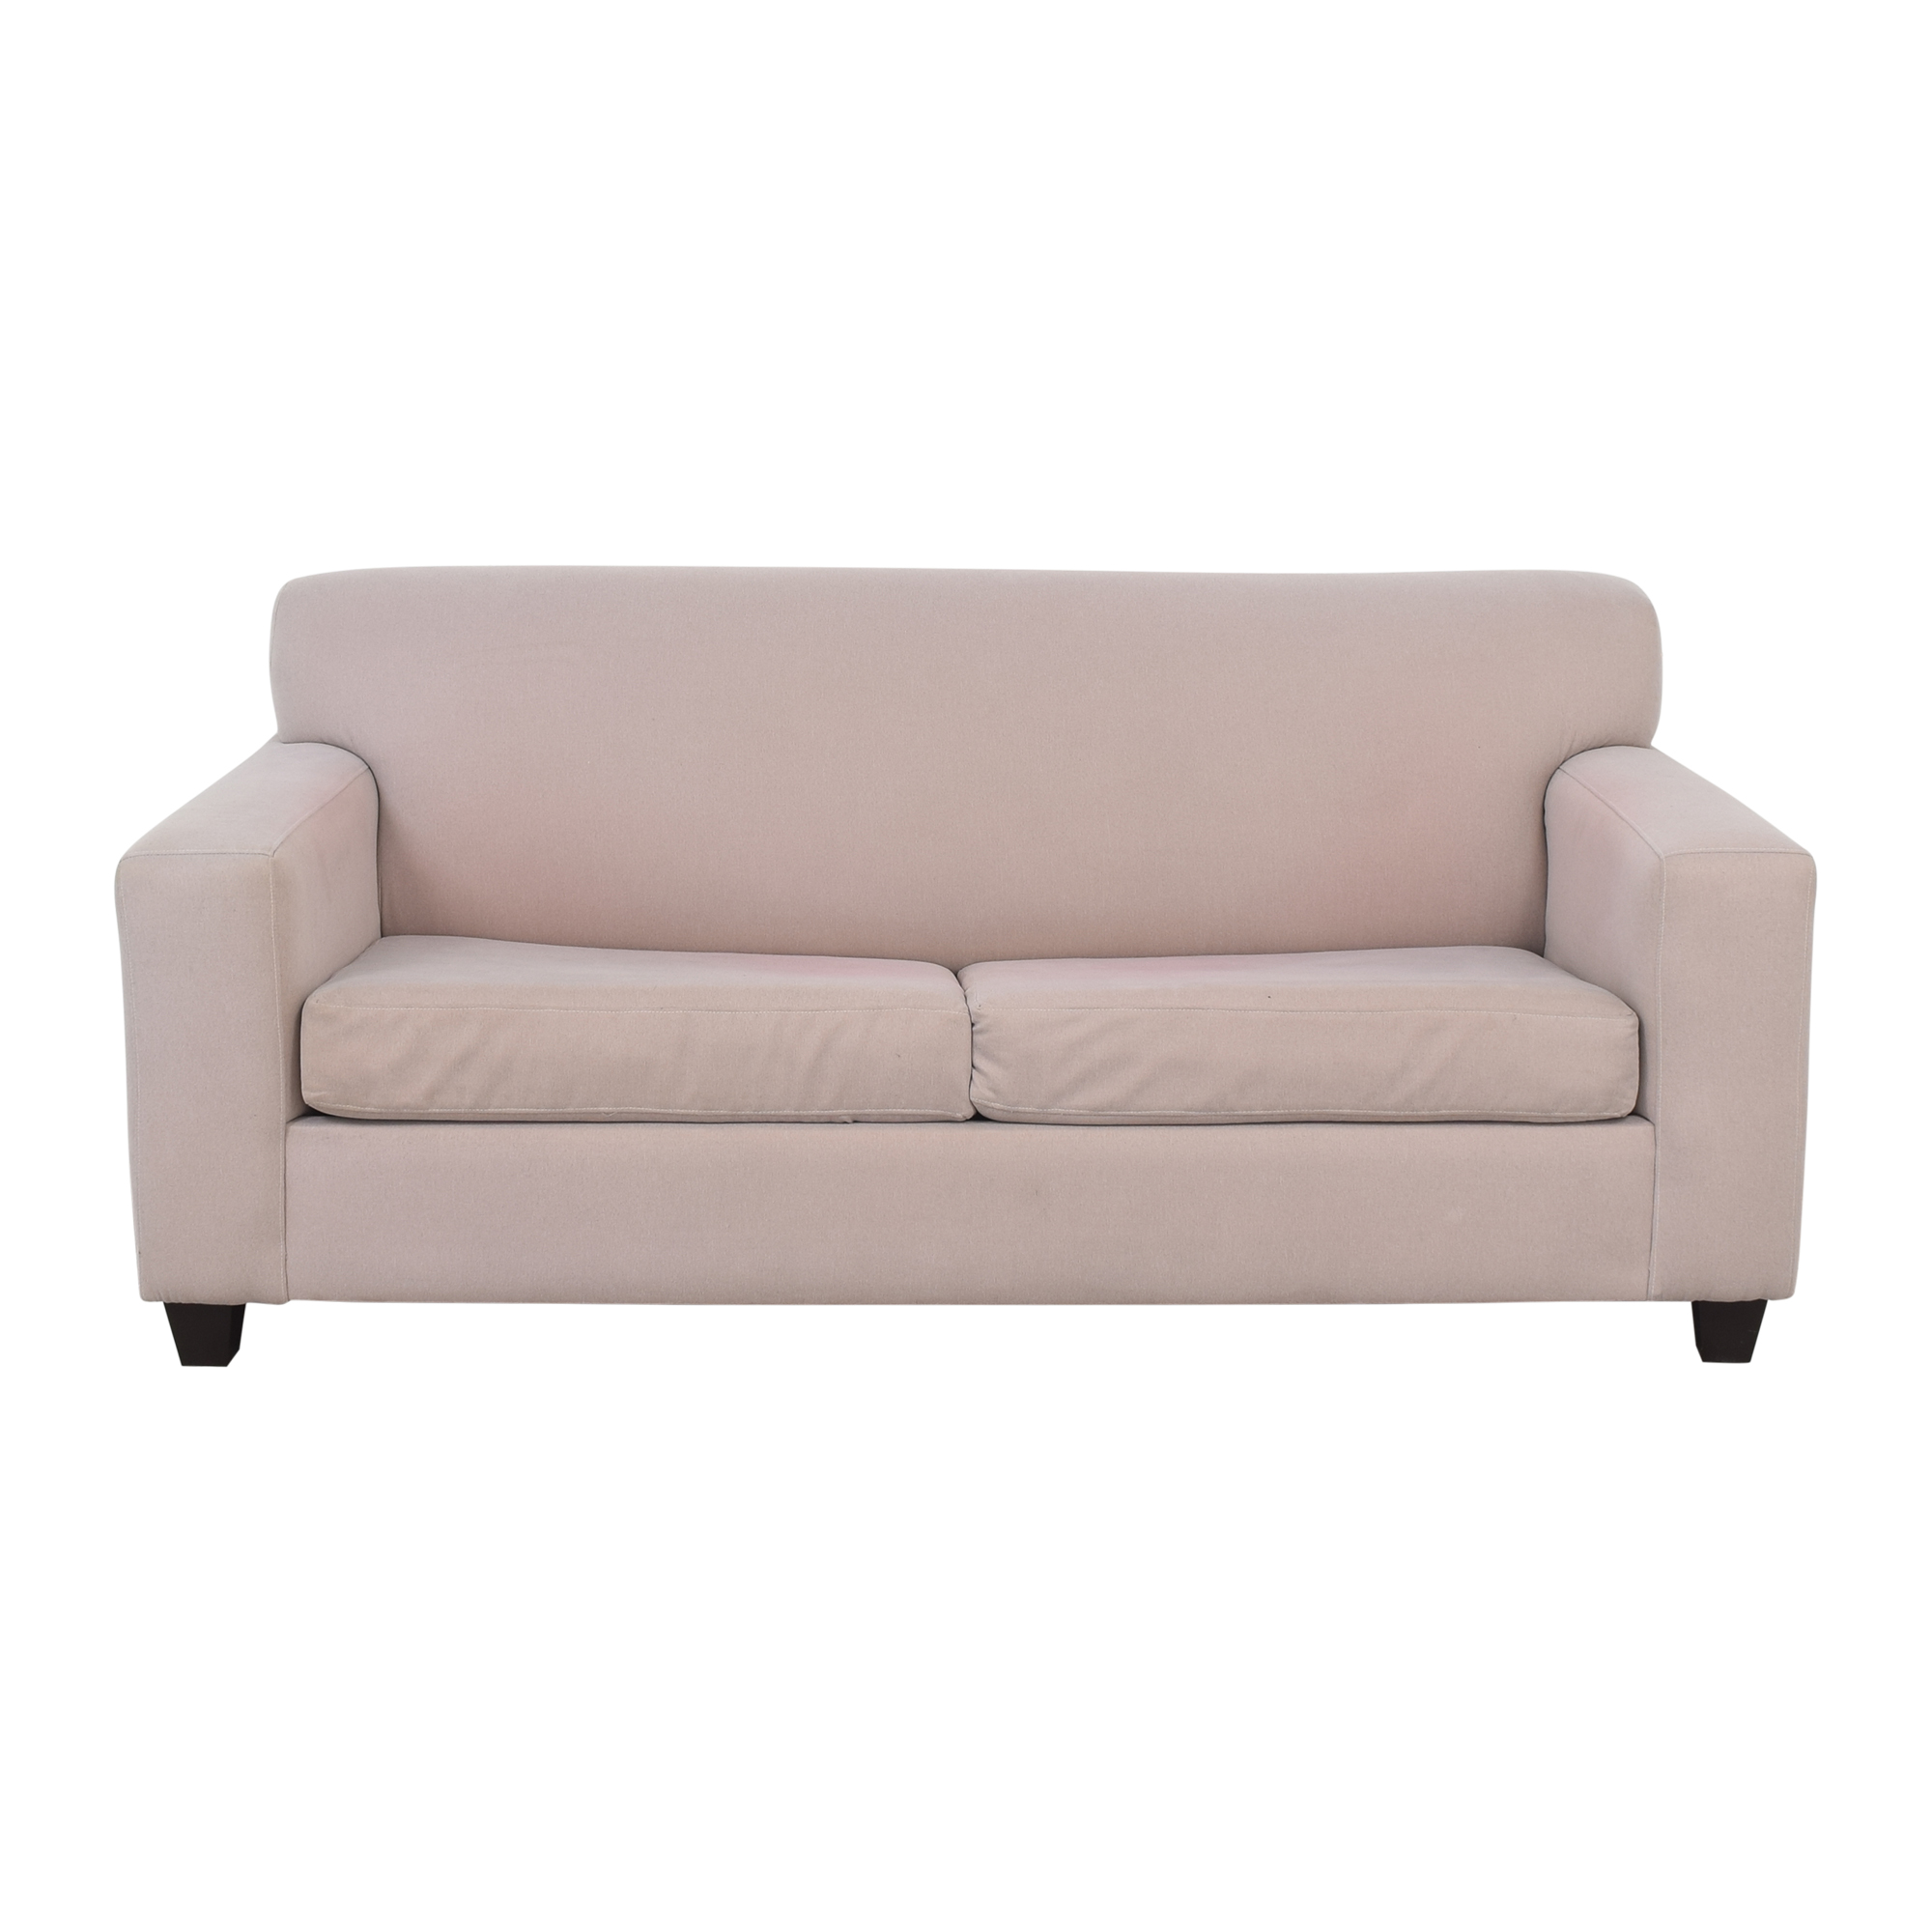 buy Sears Full Sofa Bed Sears Sofa Beds